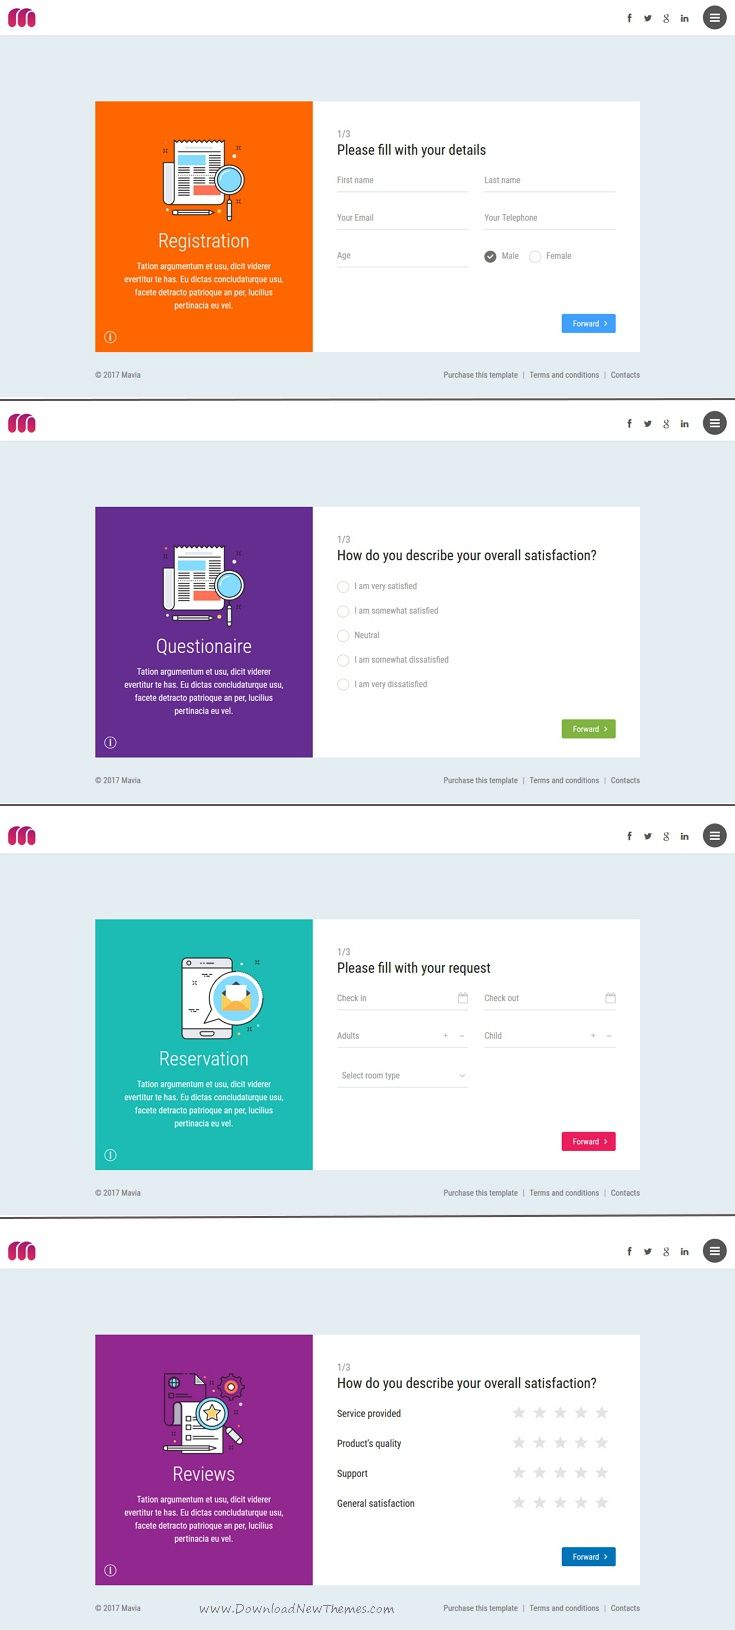 MAVIA Register Reservation Questionare Reviews Form Wizard Ui - Invoice html template bootstrap free download online layaway stores